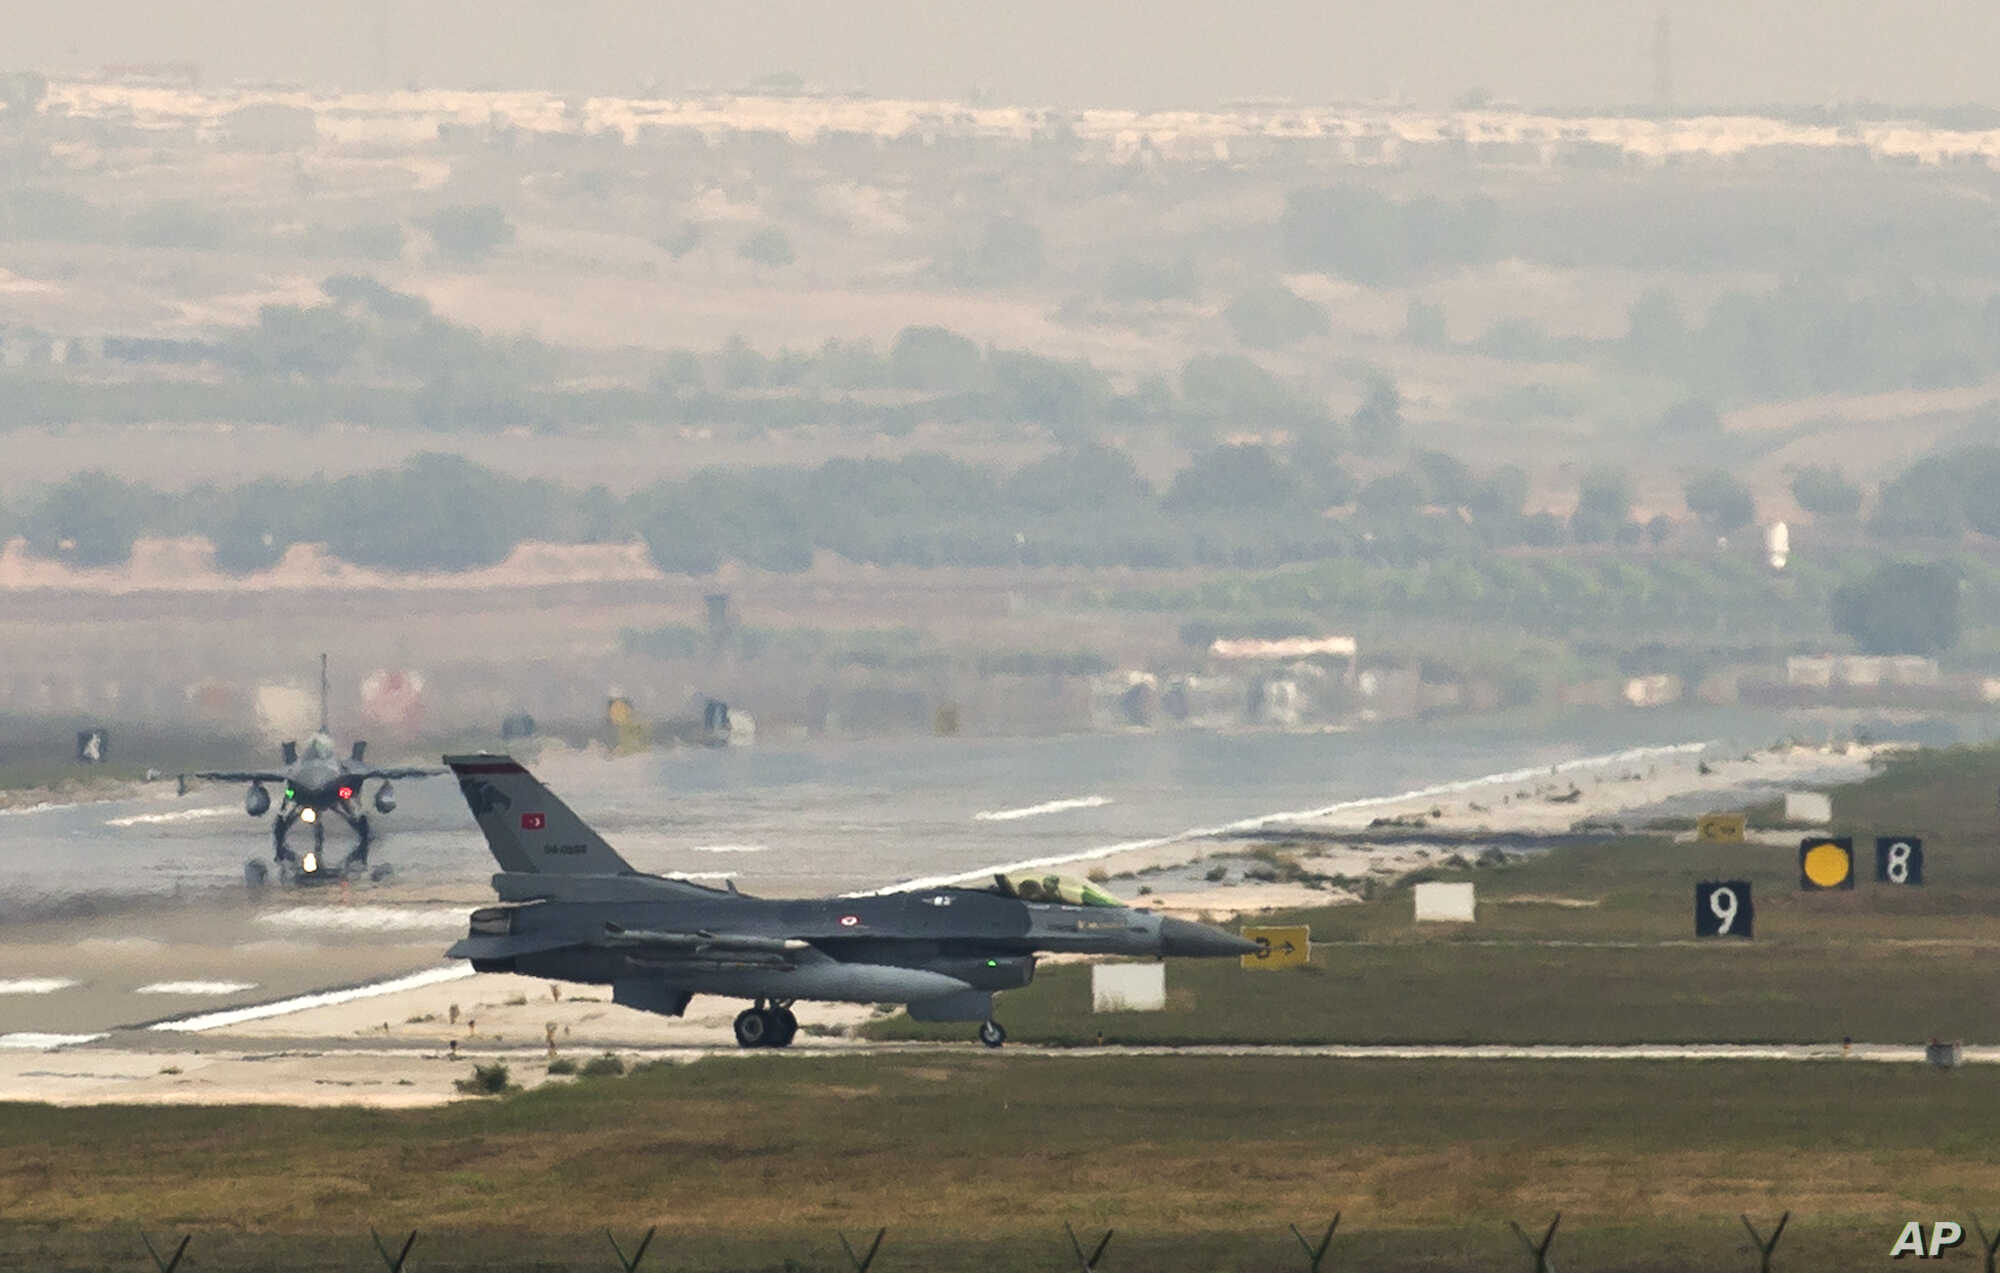 Military Activity Seen at Turkey's Incirlik Air Base | Voice ... on shaw air force base, ramstein air base, aviano air base, osan air base, 39th air base wing, eaker air force base map, dover air base map, otis air national guard base map, raf alconbury, buckley air base map, raf lakenheath, selfridge air base map, barksdale air base map, malmstrom air force base, shaw air base map, eglin air base map, phan rang air base map, minot air force base, izmir air base, marine corps air station iwakuni map, scott air force base, howard air force base map, los angeles air force base map, barksdale air force base, andersen air base map, tyndall air base map, mcconnell air base map, lajes field, kadena air base, croughton air base map, seymour johnson air force base map, united states air force academy map, iwakuni air base map, offutt air base map,